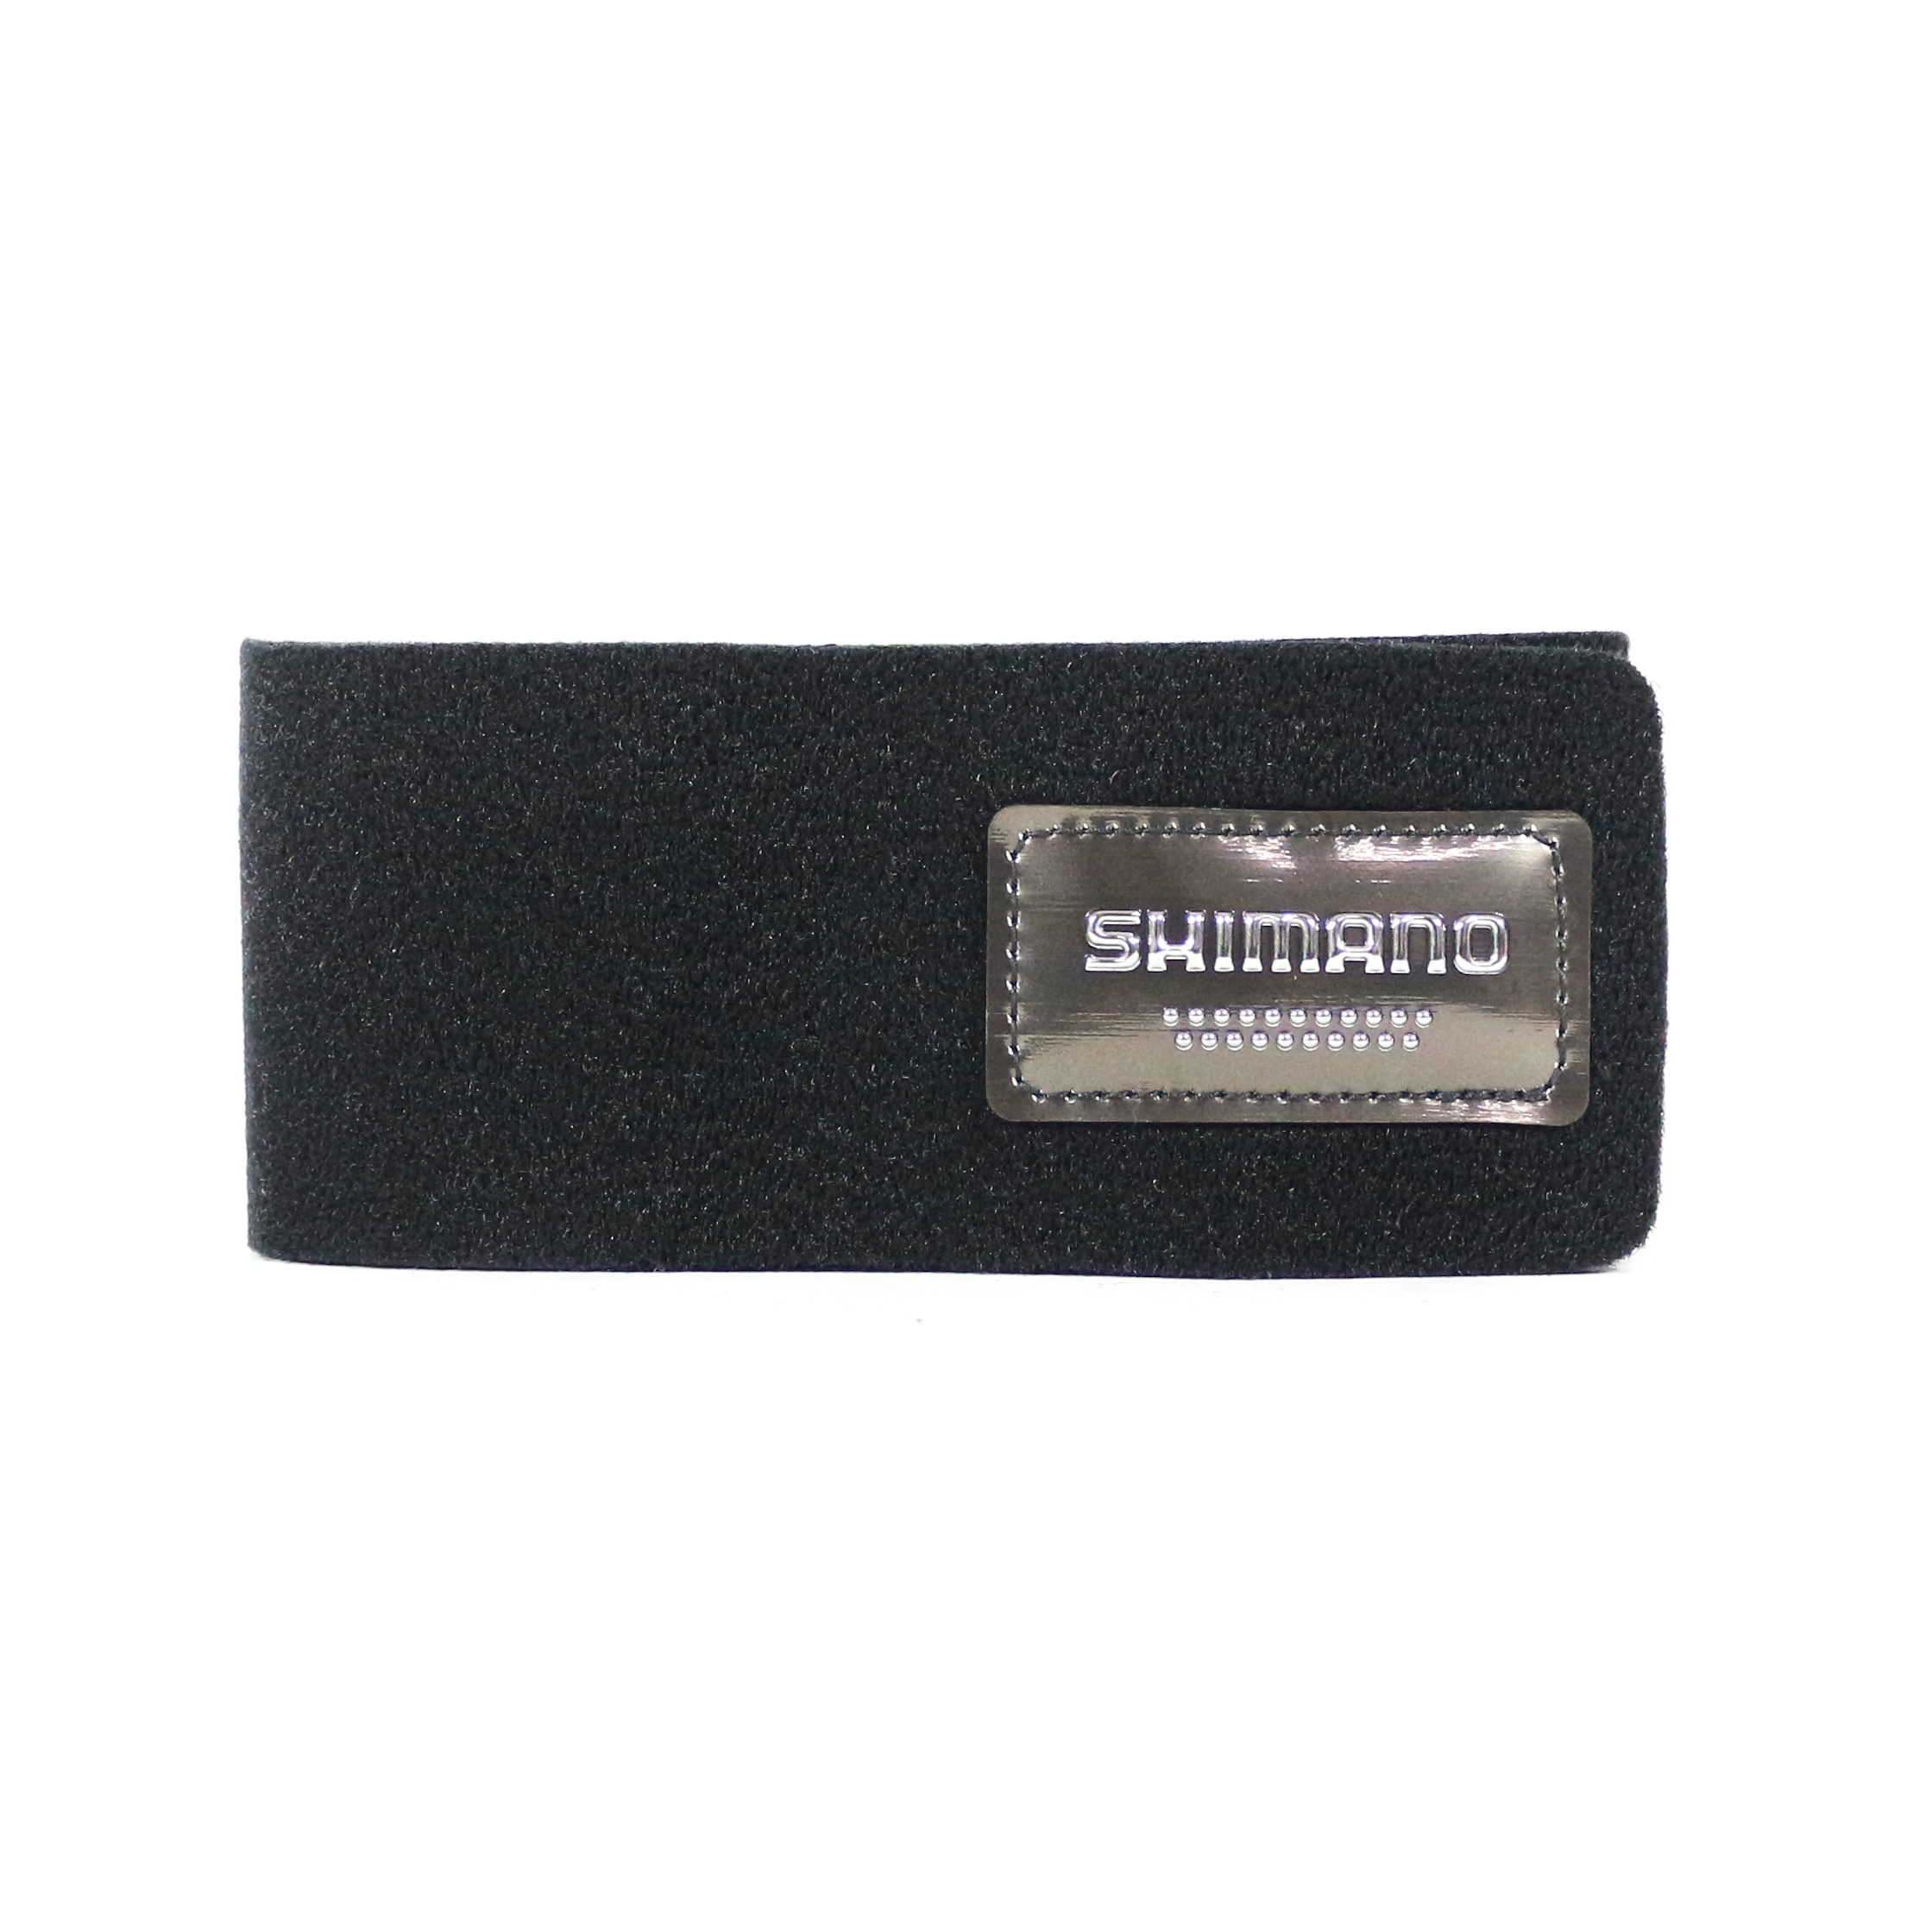 Shimano BE-012G Rod Belt Strap 2 Piece Pack Size L 50 x 330 mm 977236